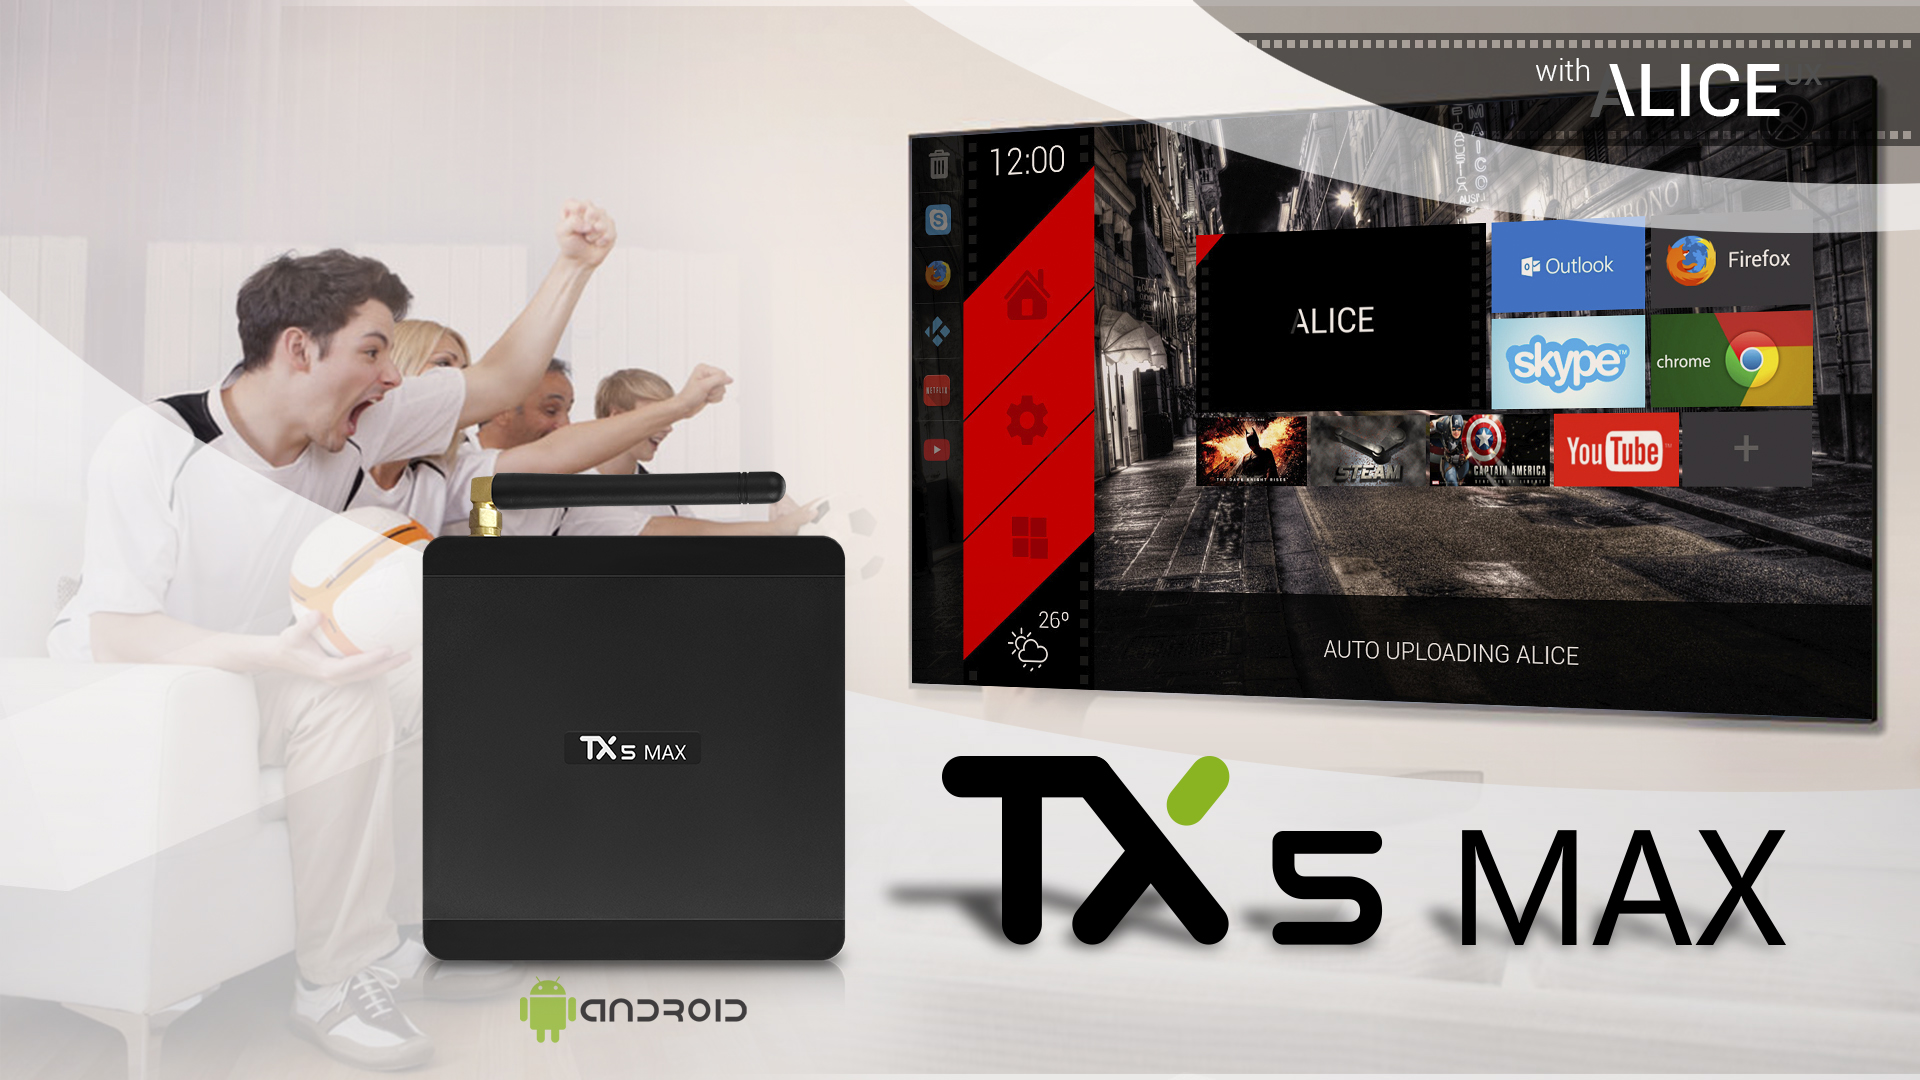 Tanix TX5 Max S905X2 4GB DDR4 32GB Android 8.1 5G WIFI bluetooth4.2 1000M LAN 4K TV Box